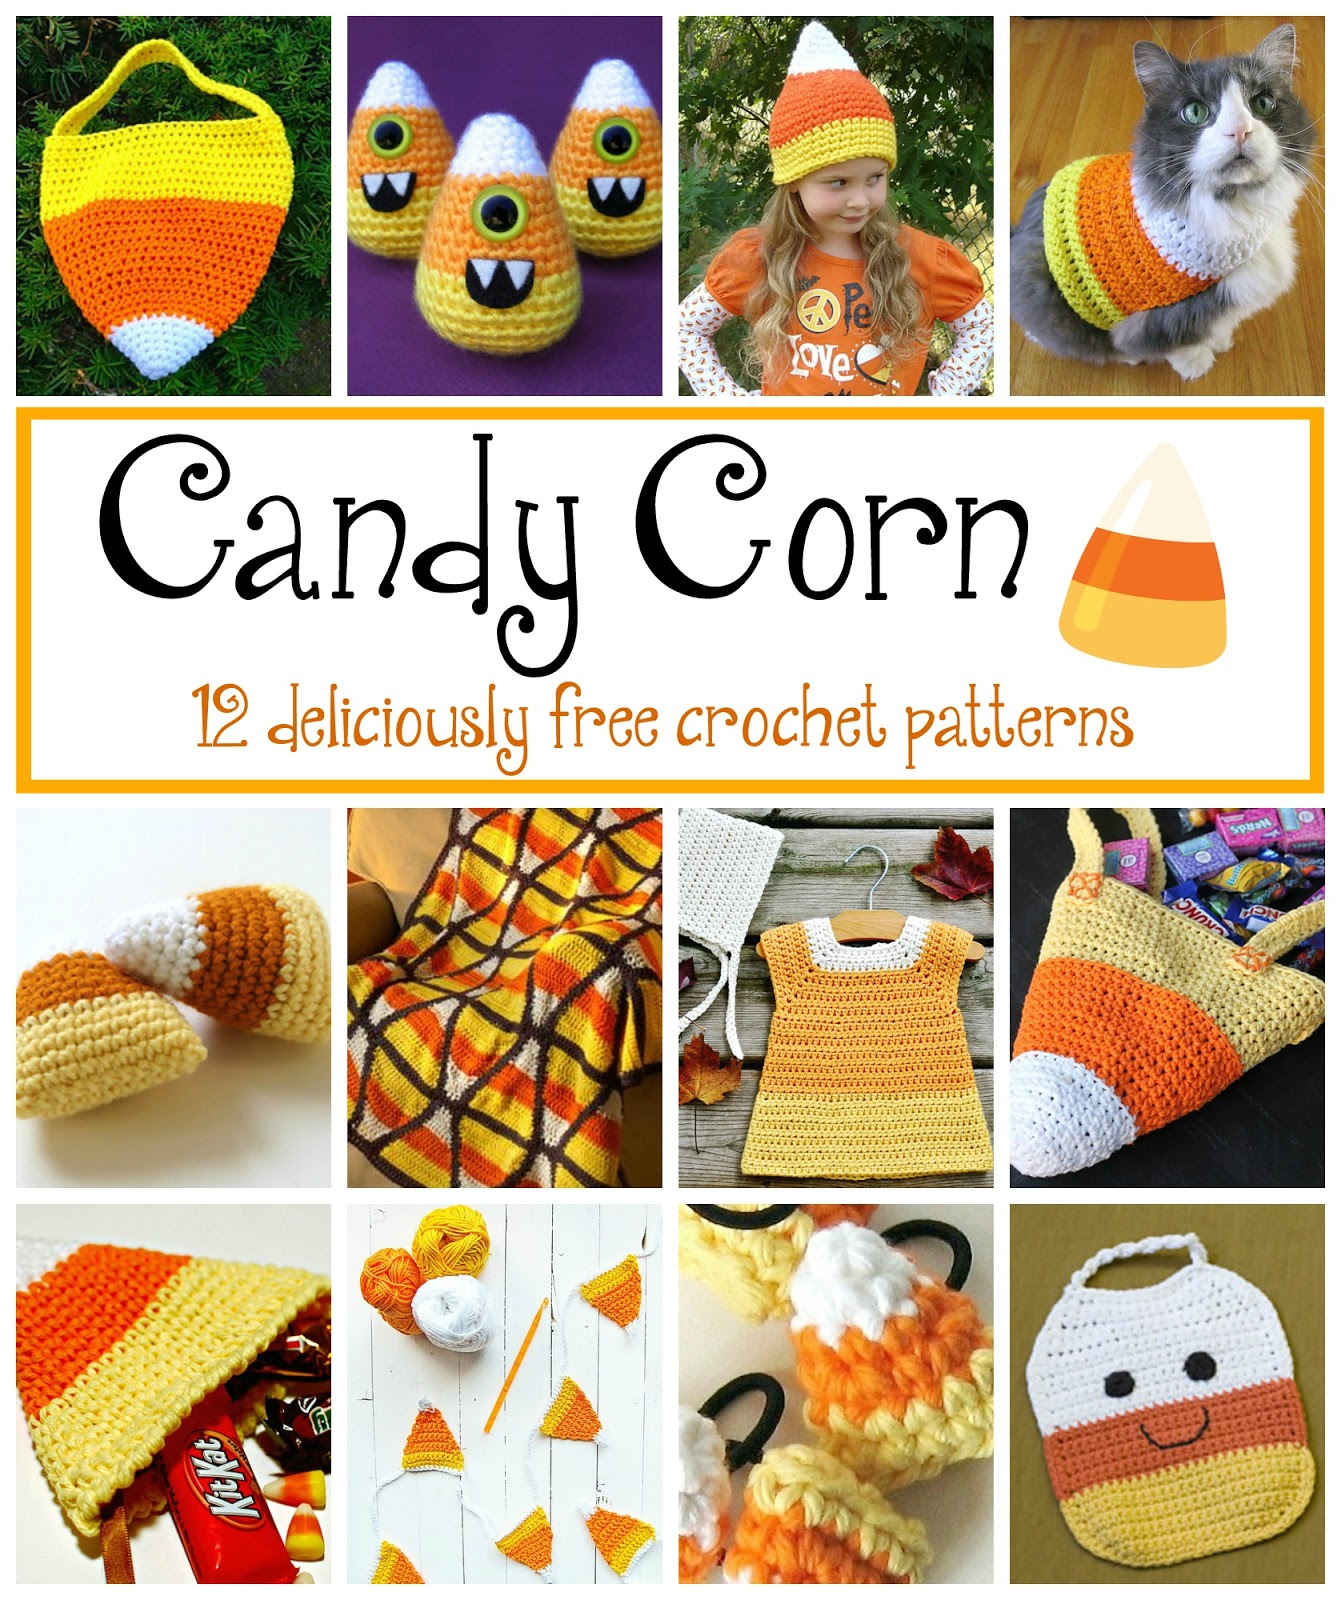 28/08/2020· use stitch markers to connect the bottom and side of the bag to the candy corn pieces. Fiber Flux Candy Corn 12 Free Crochet Patterns